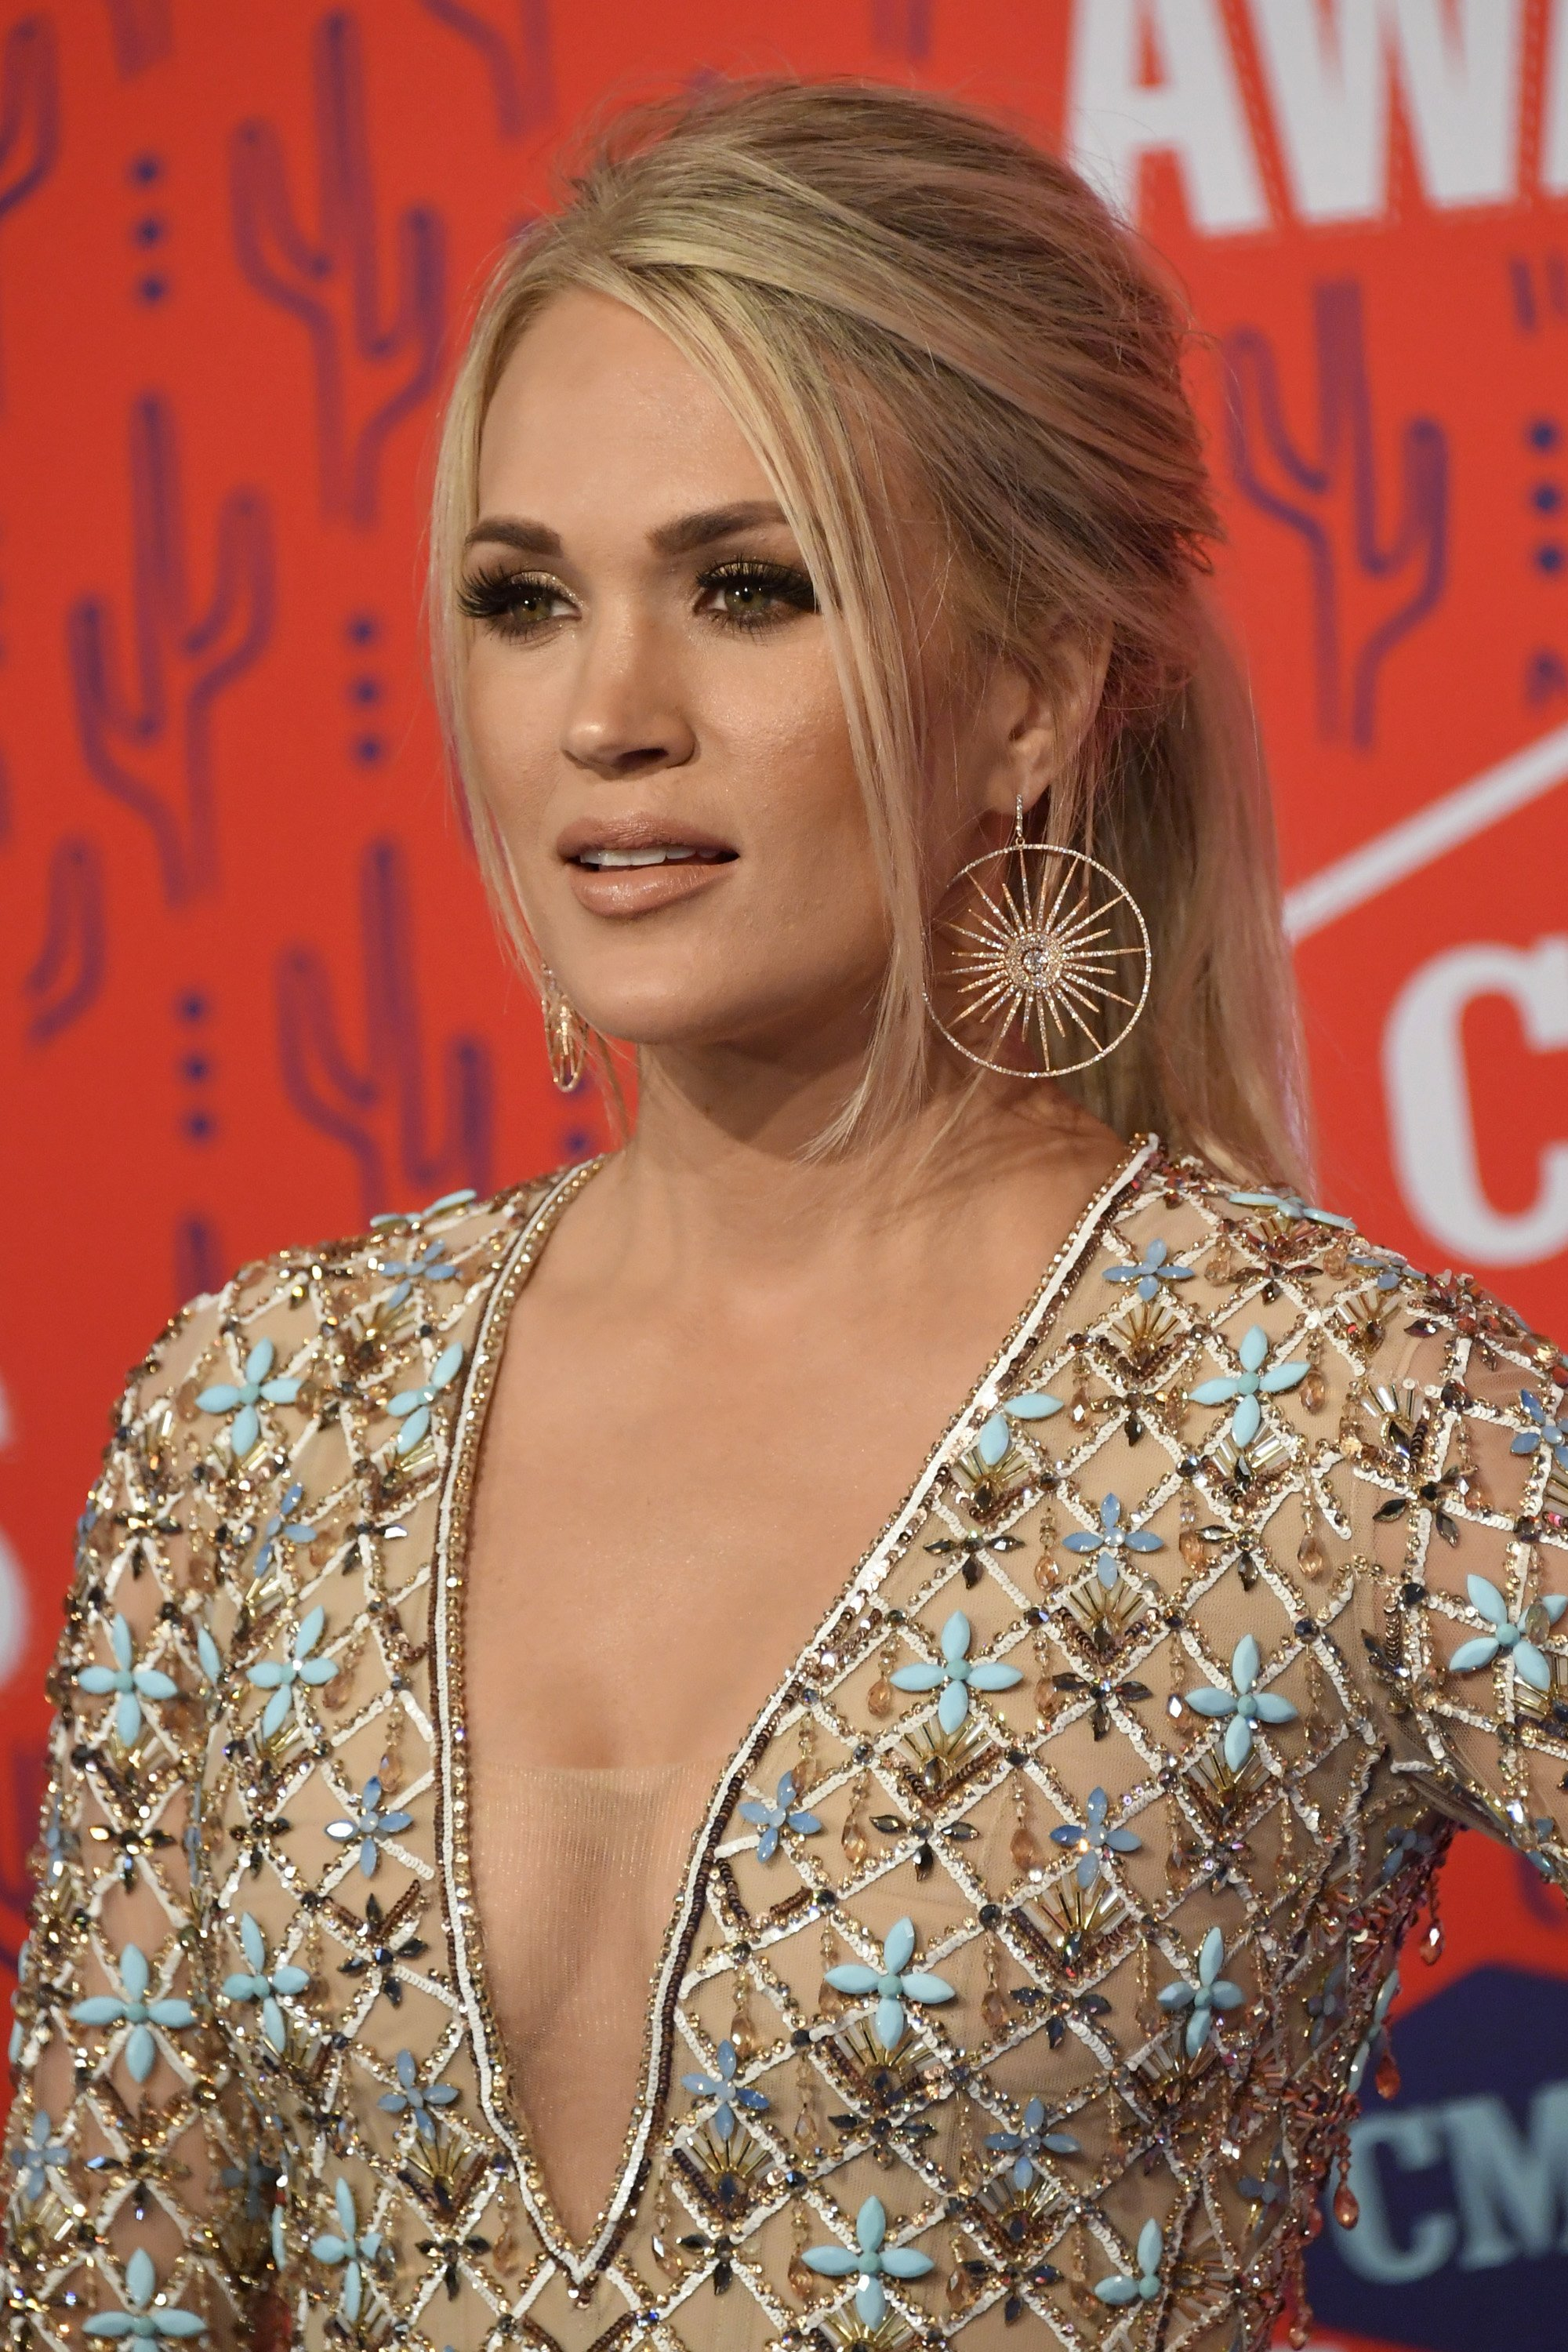 Carrie Underwood at the 2019 Country Music Awards | Photo: Getty Images